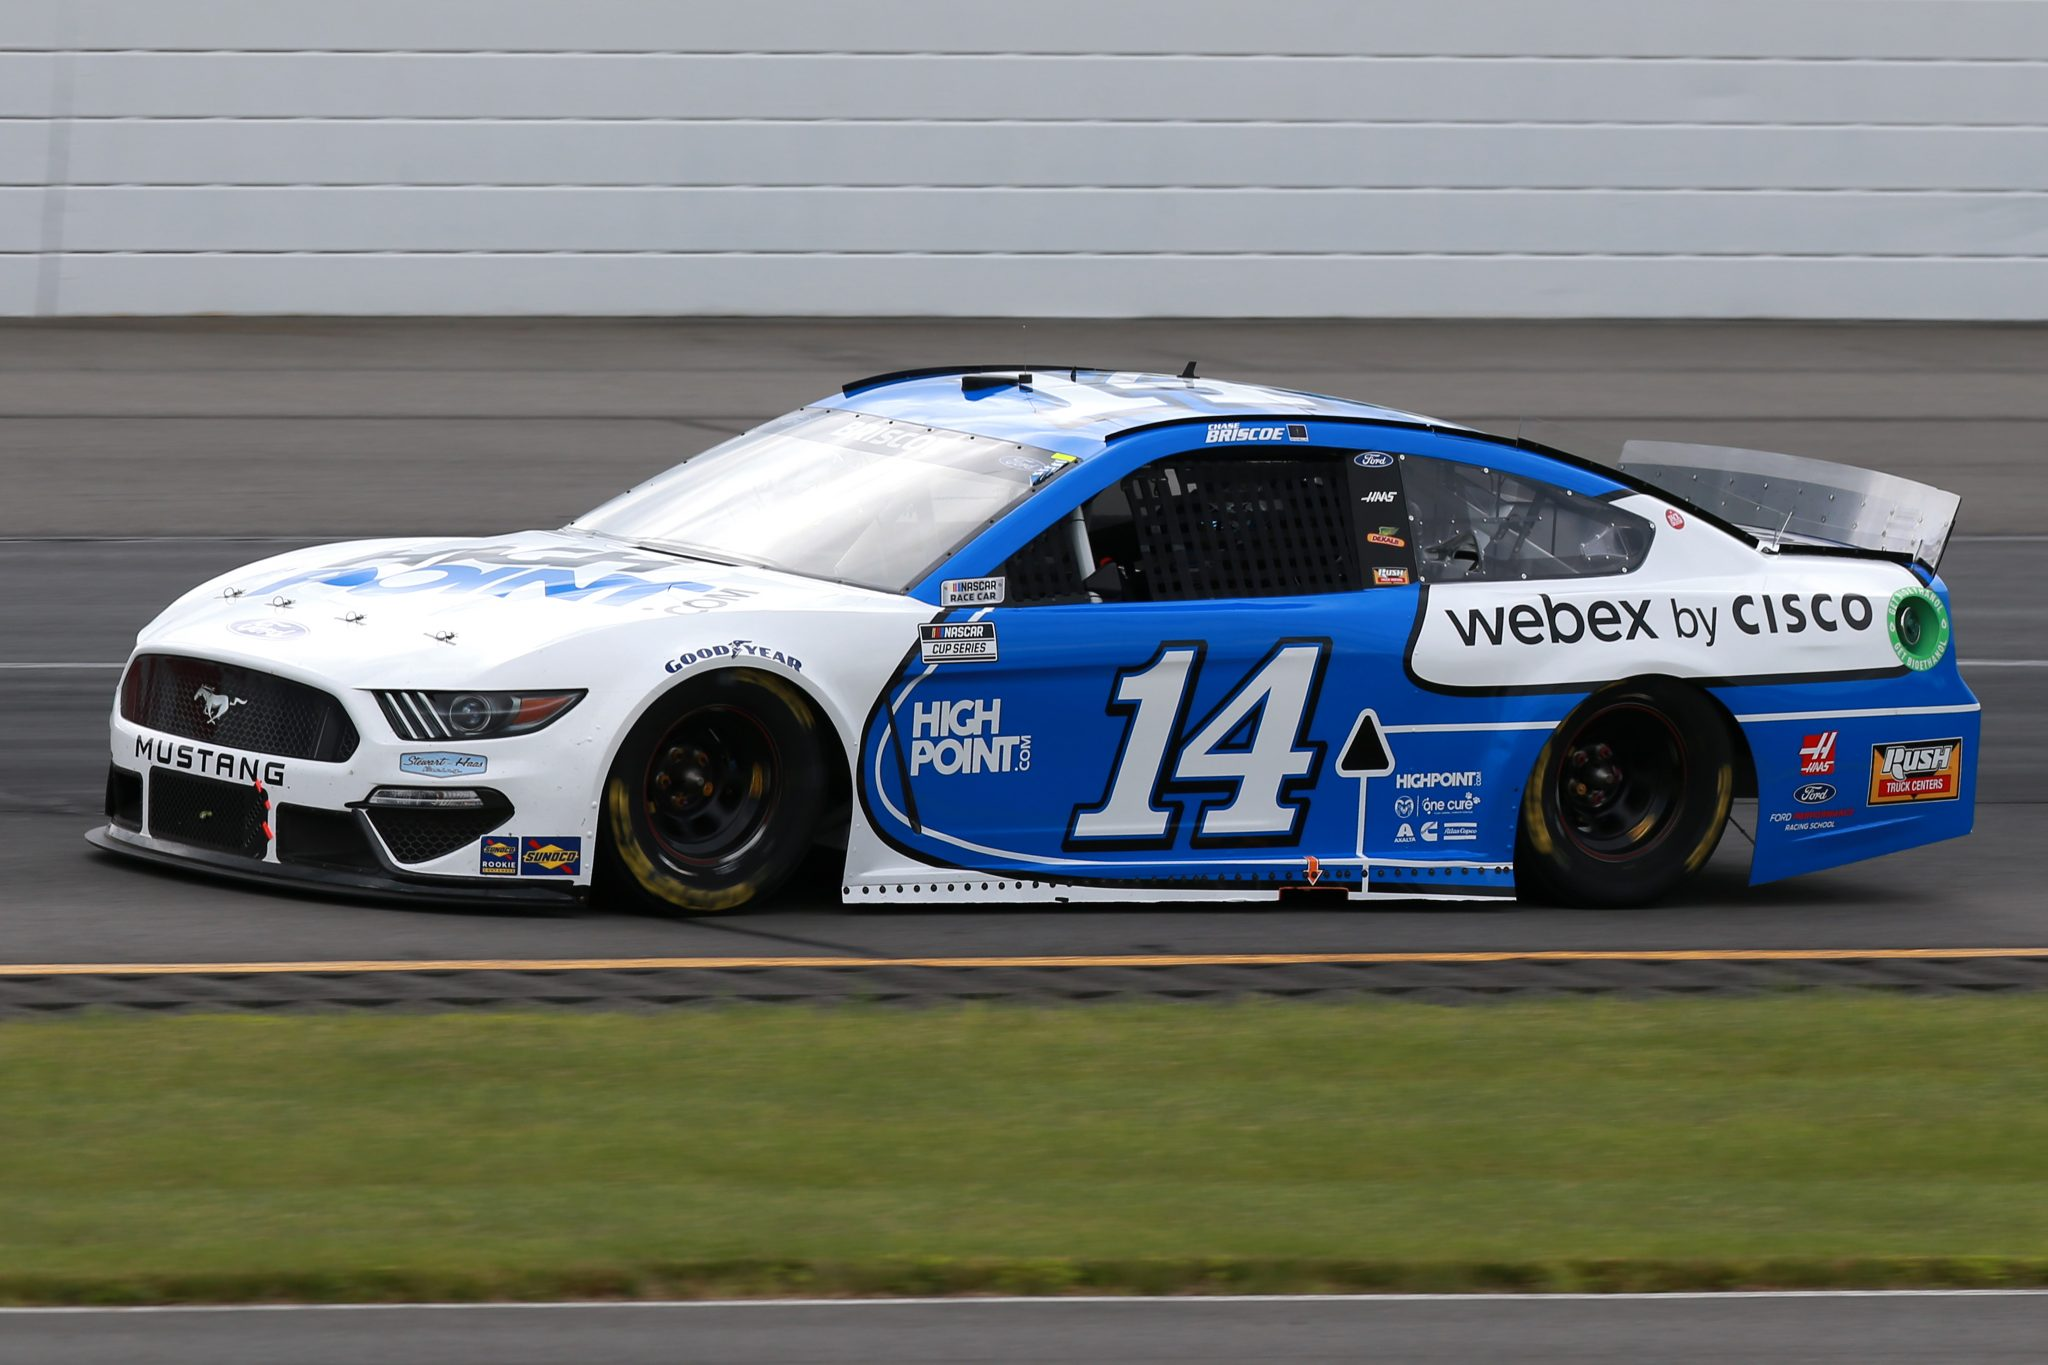 LONG POND, PENNSYLVANIA - JUNE 26: Chase Briscoe, driver of the #14 HighPoint.com/Webex by Cisco Ford, drives during the NASCAR Cup Series Pocono Organics CBD 325 at Pocono Raceway on June 26, 2021 in Long Pond, Pennsylvania. (Photo by Sean Gardner/Getty Images)   Getty Images